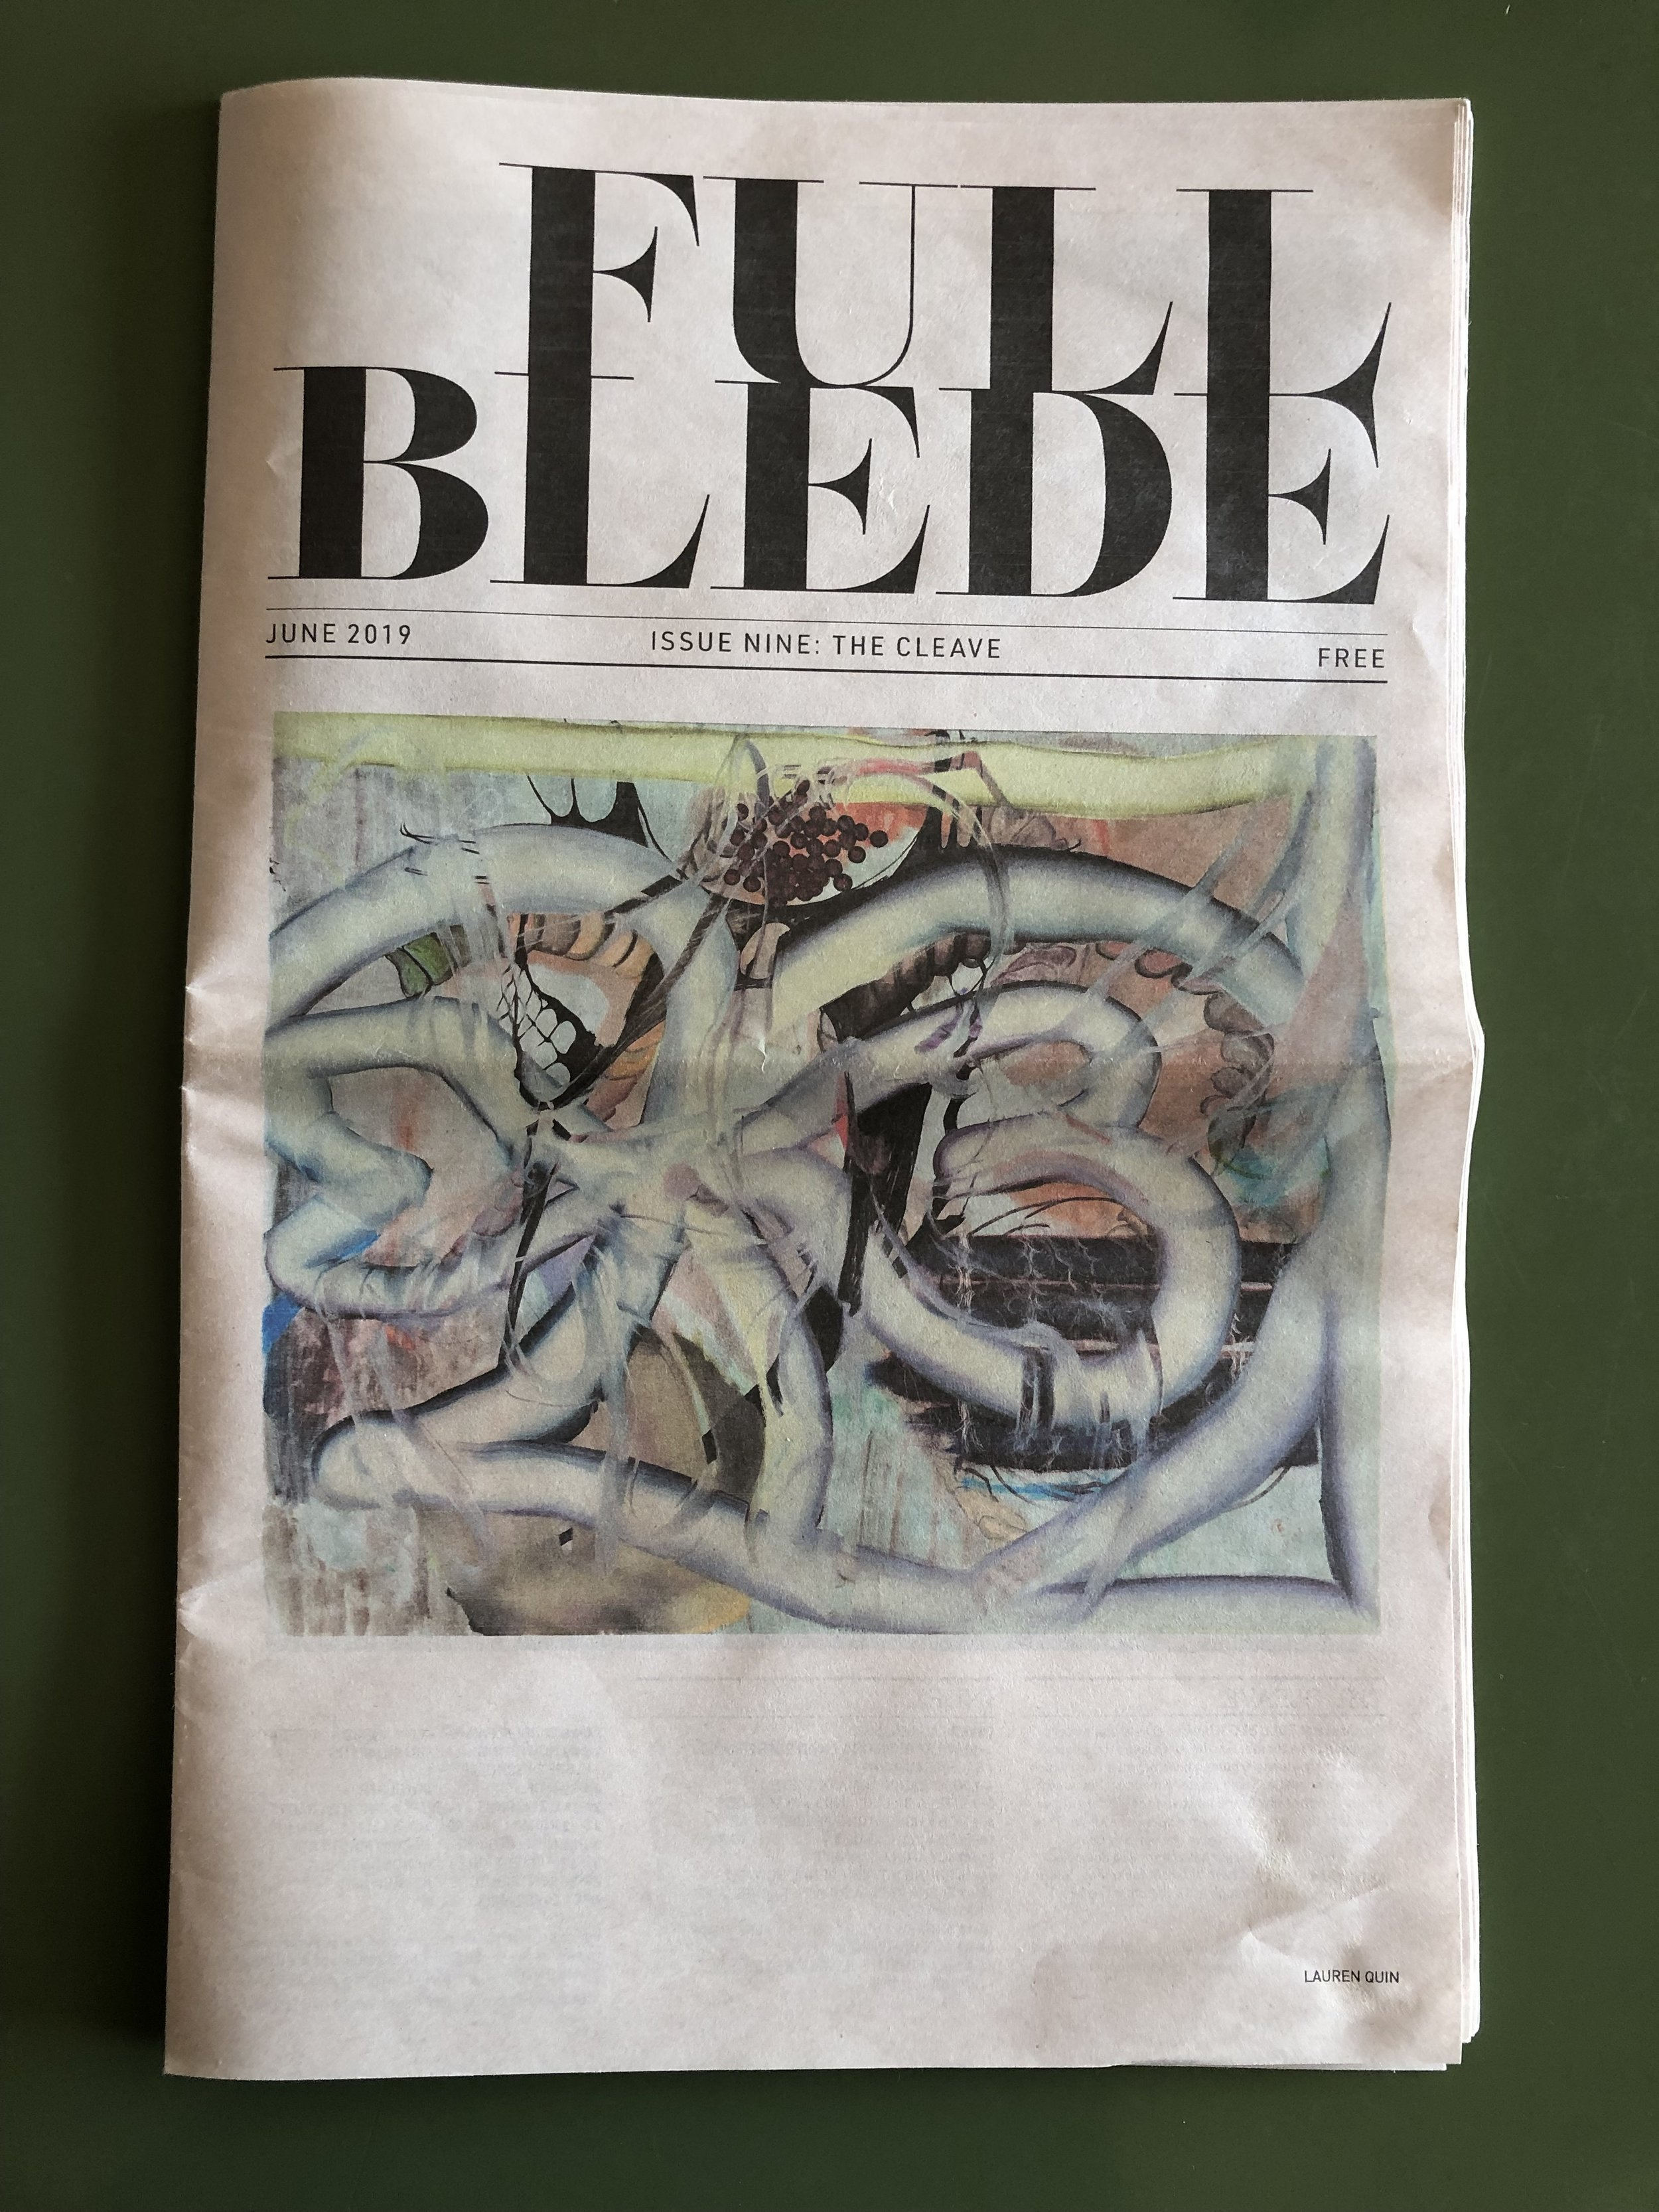 Full Blede Issue Nine: The Cleave - Pick up your copy to see my work alongside many other great artists.